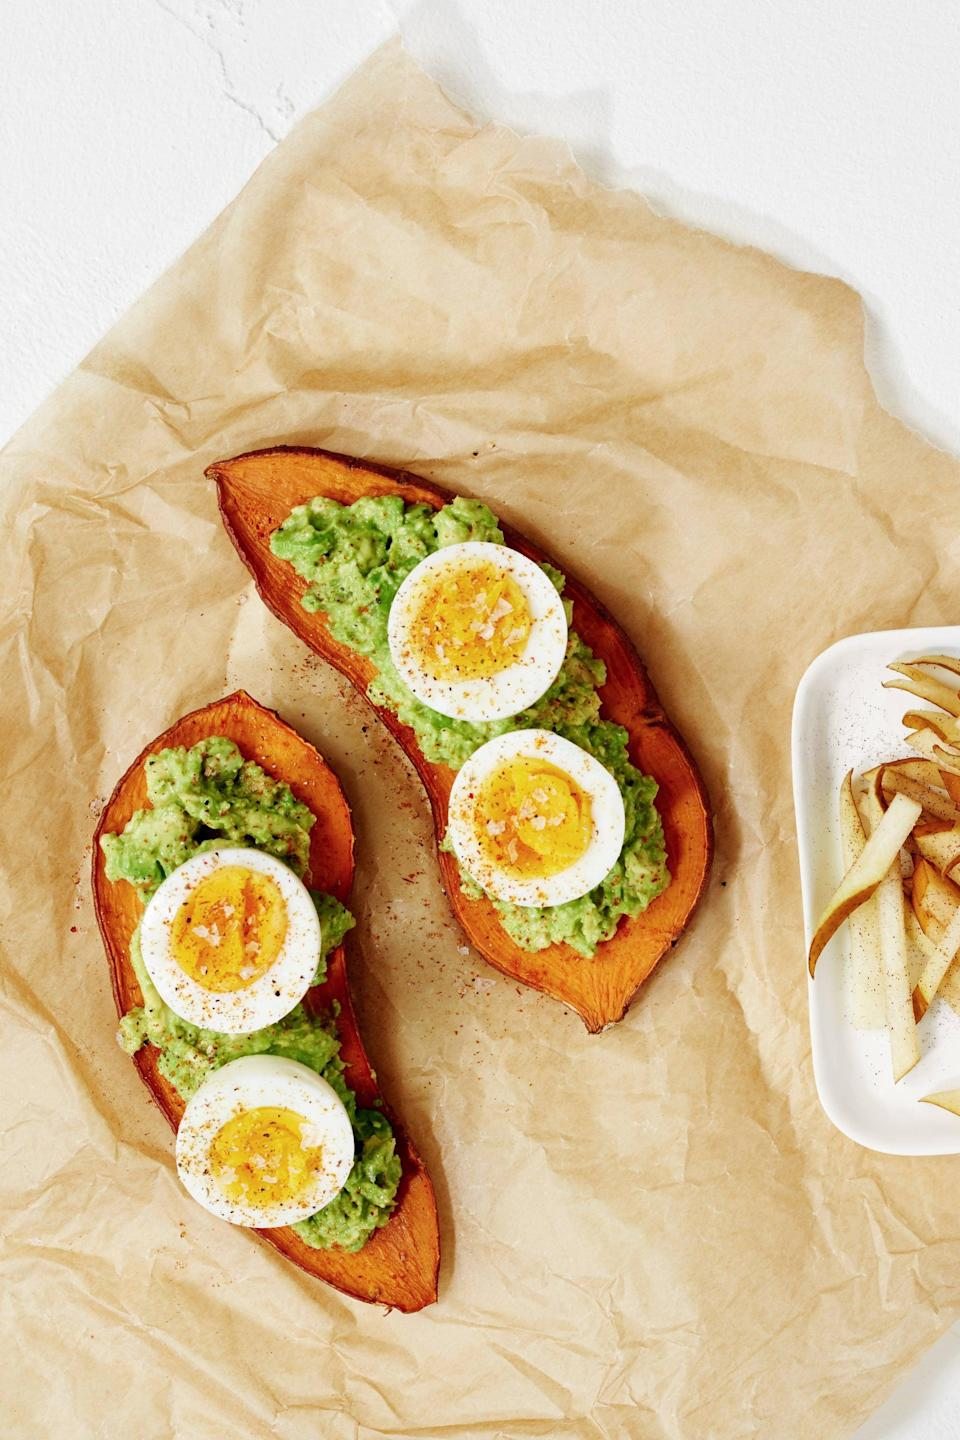 "<p>This sweet potato toast is a delicious way to add veggies to your breakfast.</p> <p><strong>Calories:</strong> 328<br> <strong>Protein:</strong> 9.1 grams</p> <p><strong>Get the recipe:</strong> <a href=""https://www.popsugar.com/fitness/Sweet-Potato-Toast-Avocado-Egg-Recipe-42779491"" class=""link rapid-noclick-resp"" rel=""nofollow noopener"" target=""_blank"" data-ylk=""slk:avocado sweet potato toast"">avocado sweet potato toast</a></p>"